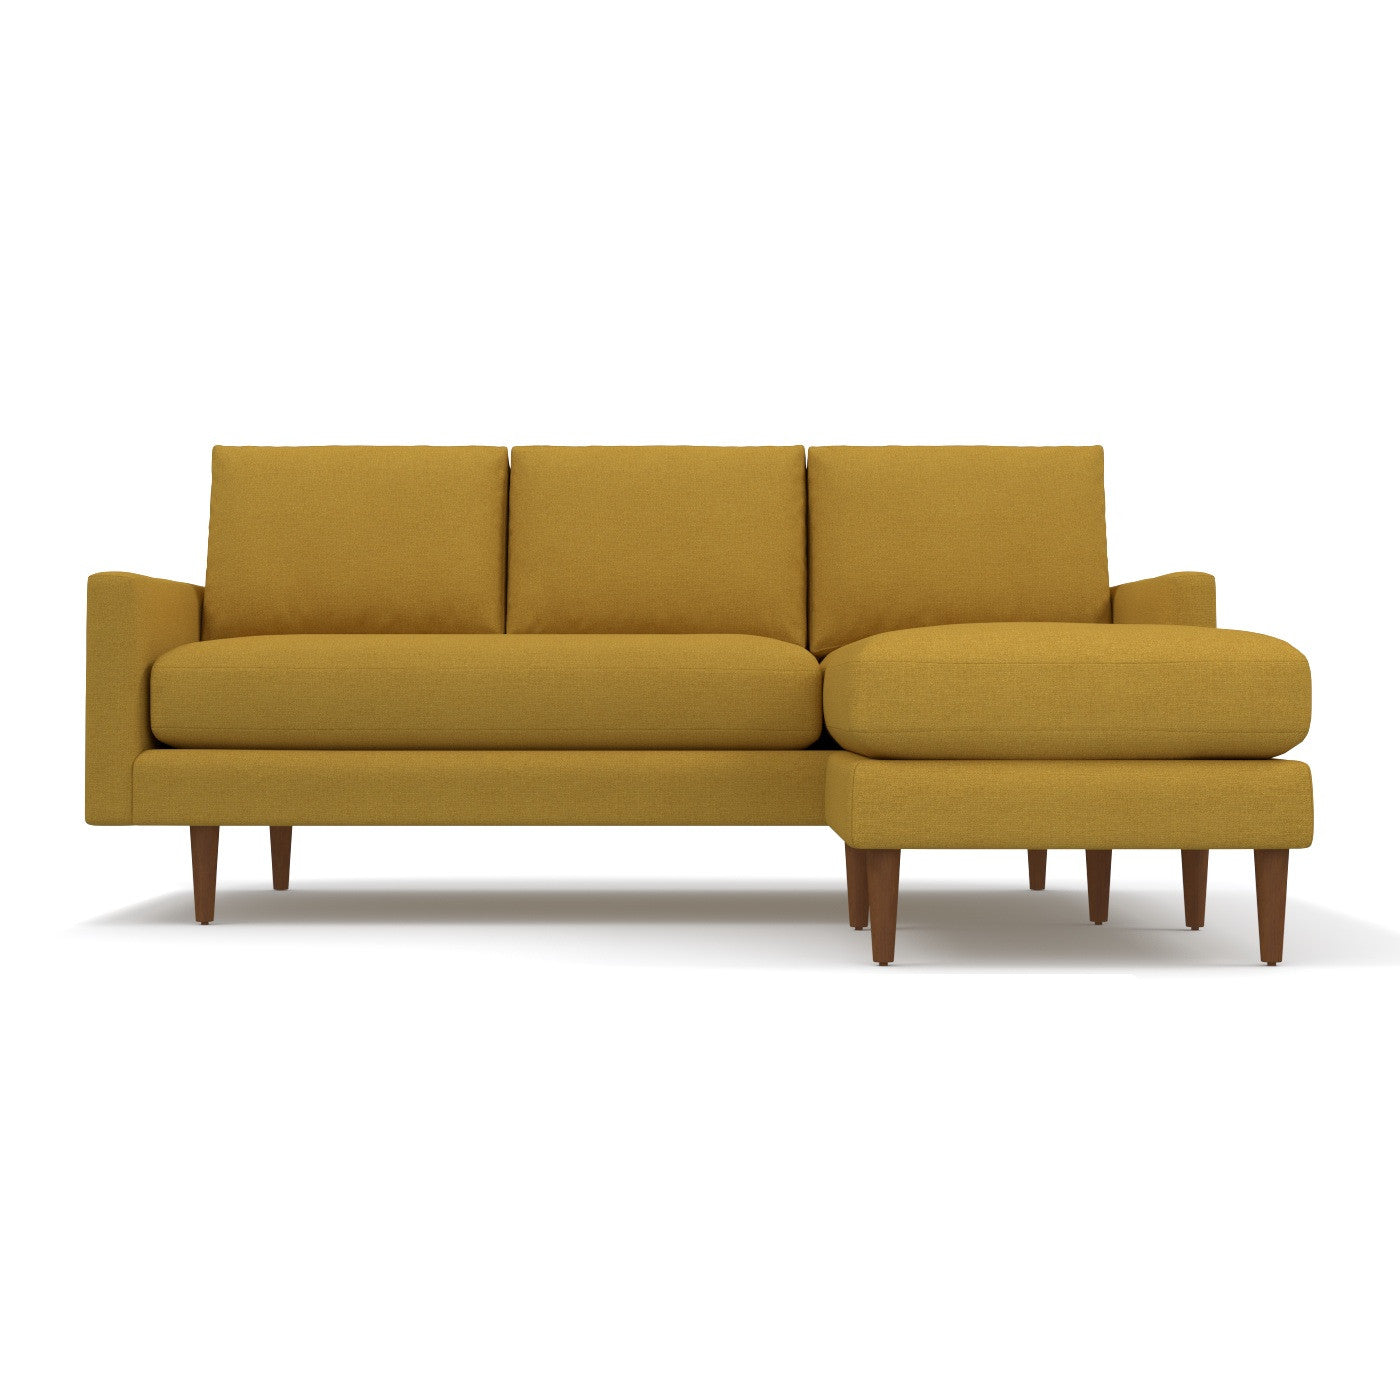 Scott Reversible Chaise Sofa from Kyle Schuneman CHOICE OF FABRICS - Apt2B  - 2